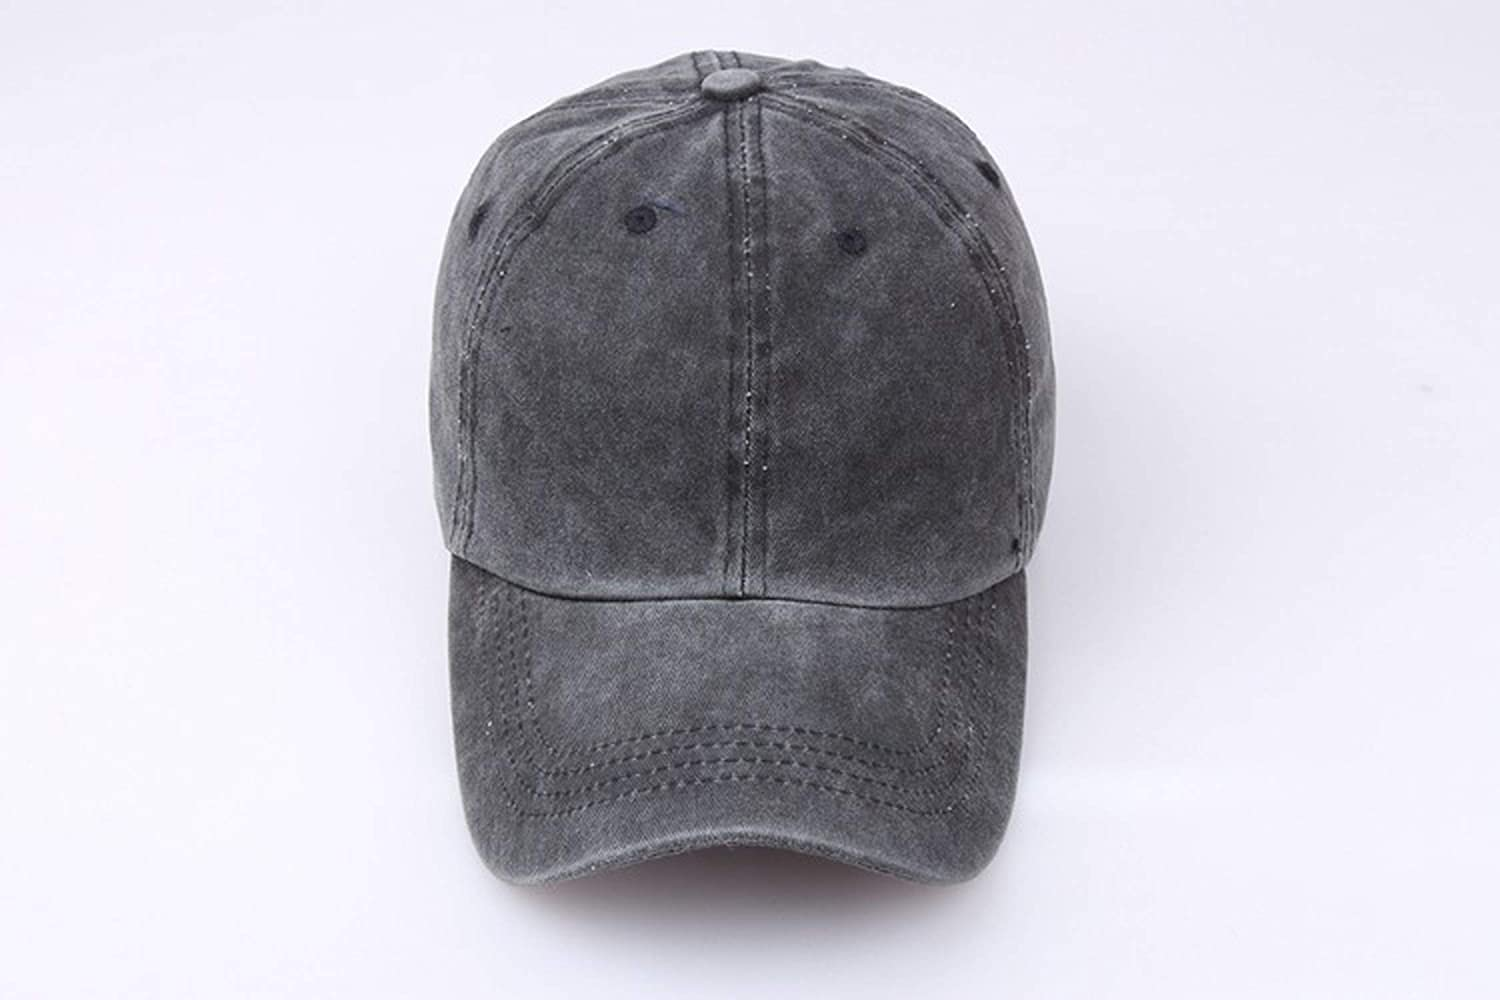 Fashion Baseball Cap Men Female Cotton Caps for Women Summer Hip Hop Male Baseball Hats Retro Dad Caps